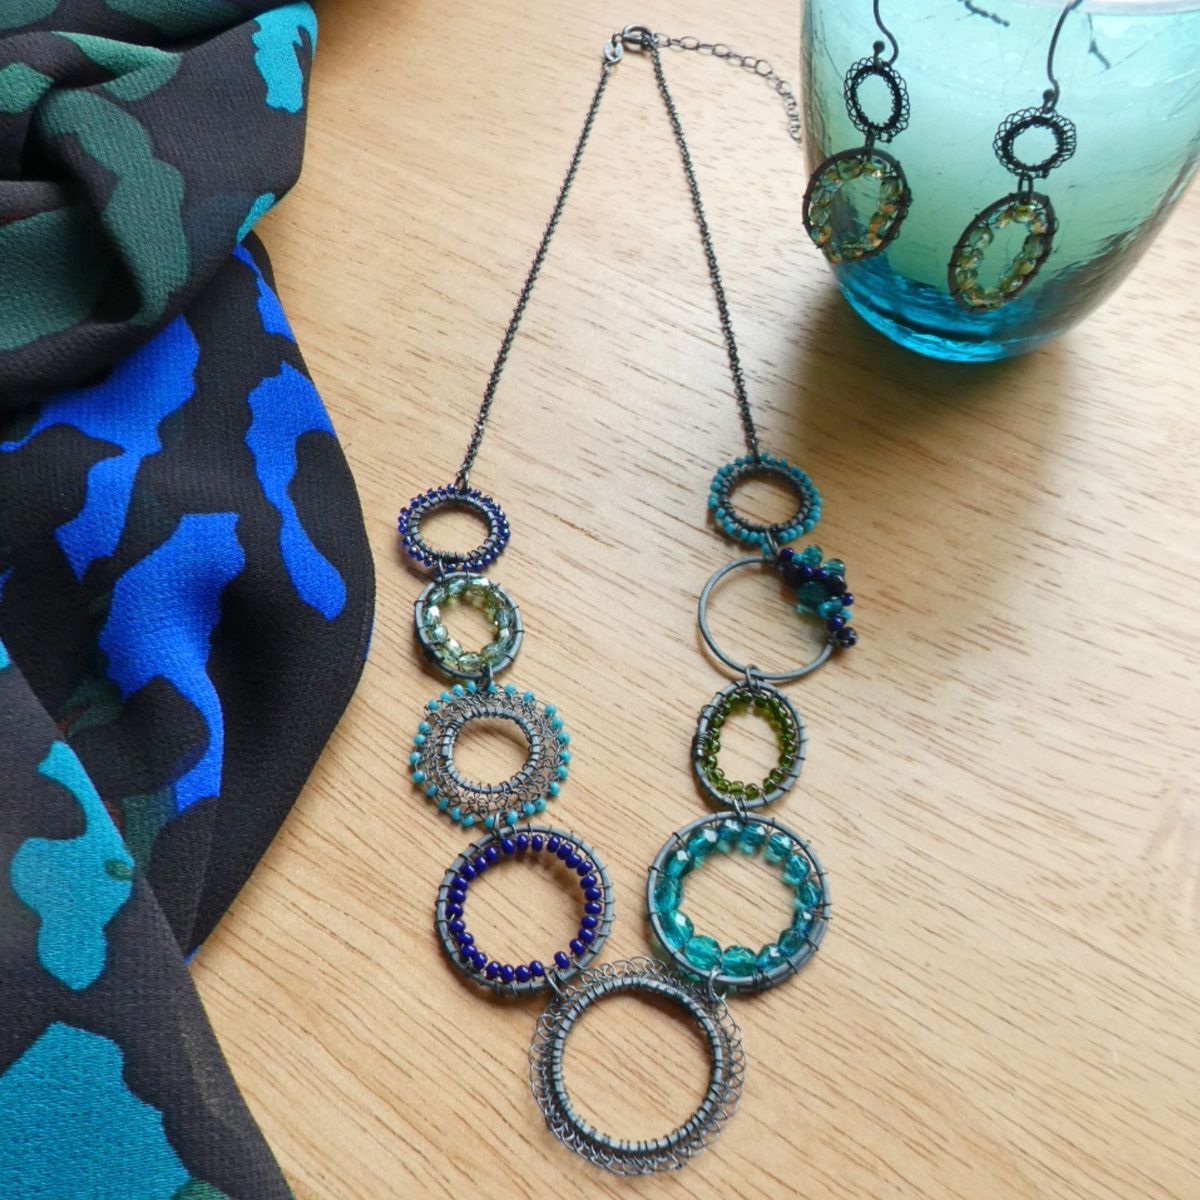 Jewellery inspired by your outfit